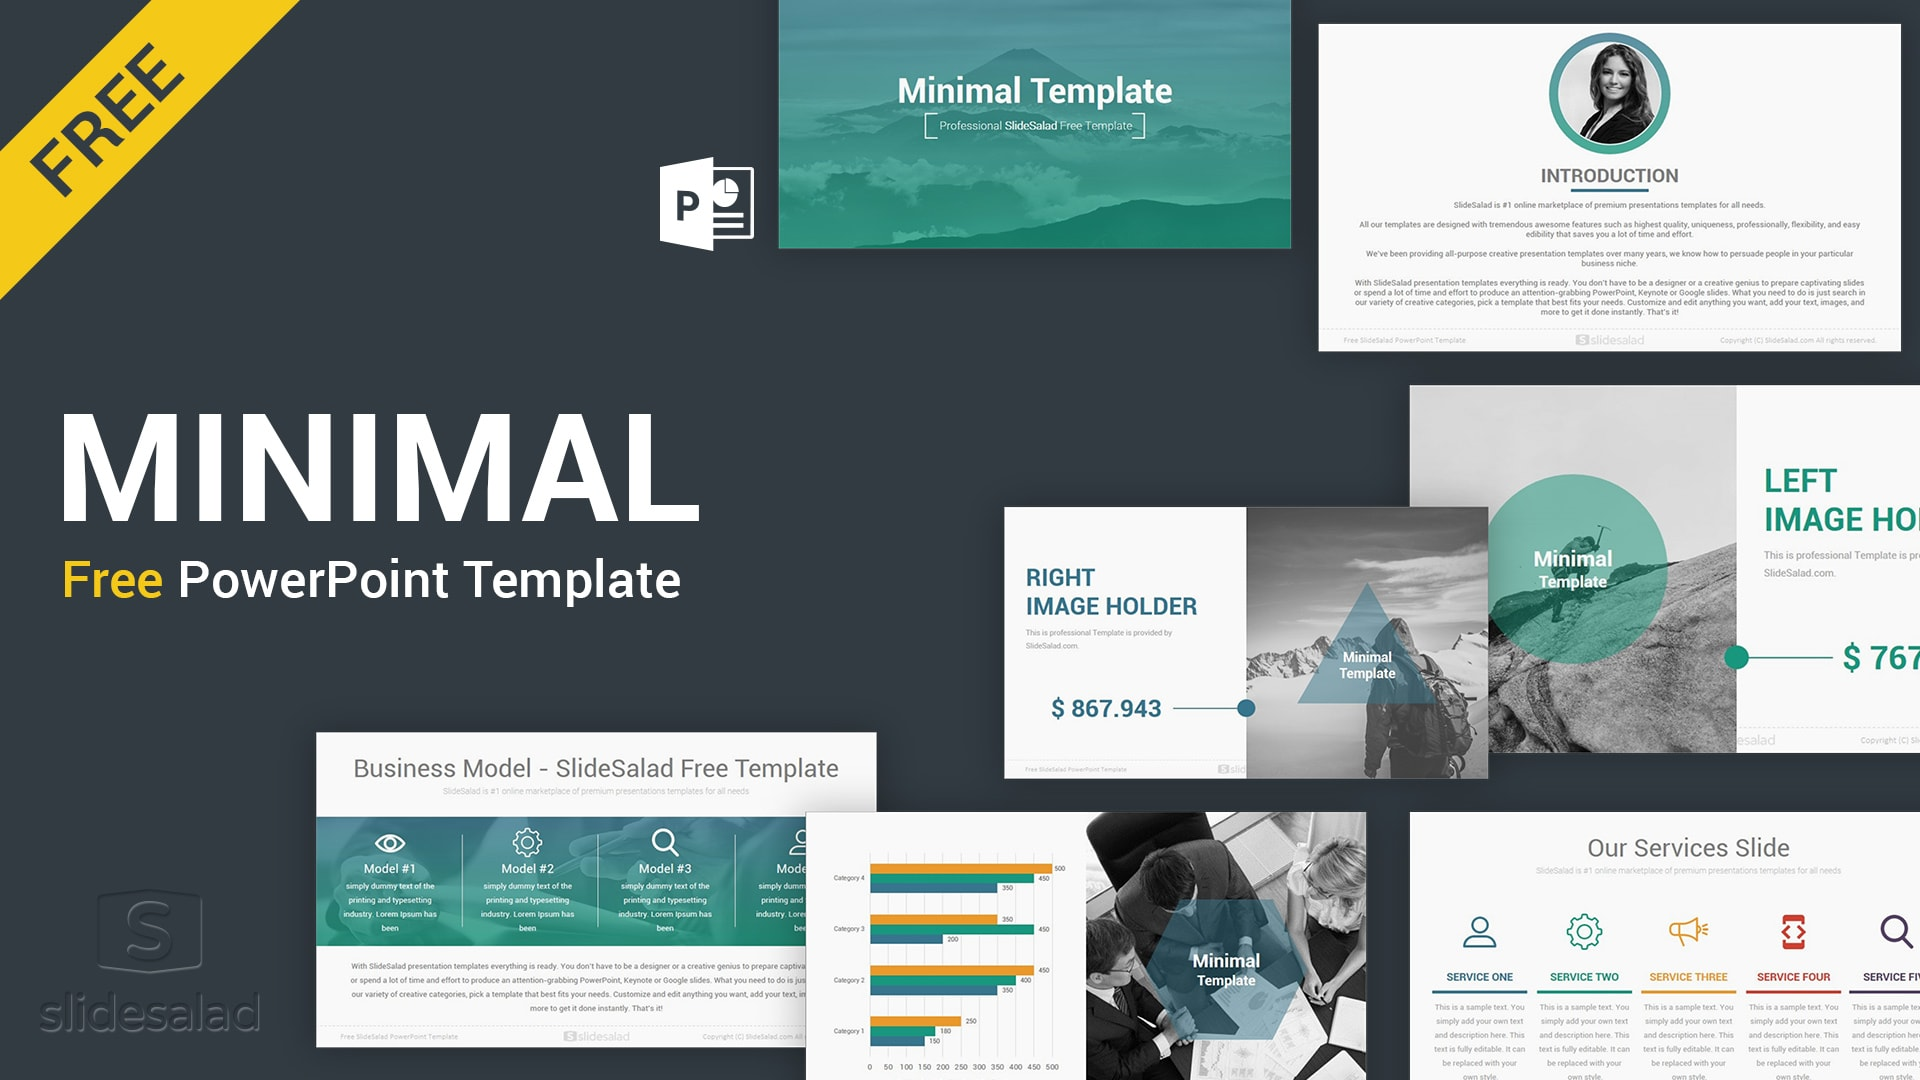 Best Free Presentation Templates Professional Designs 2020